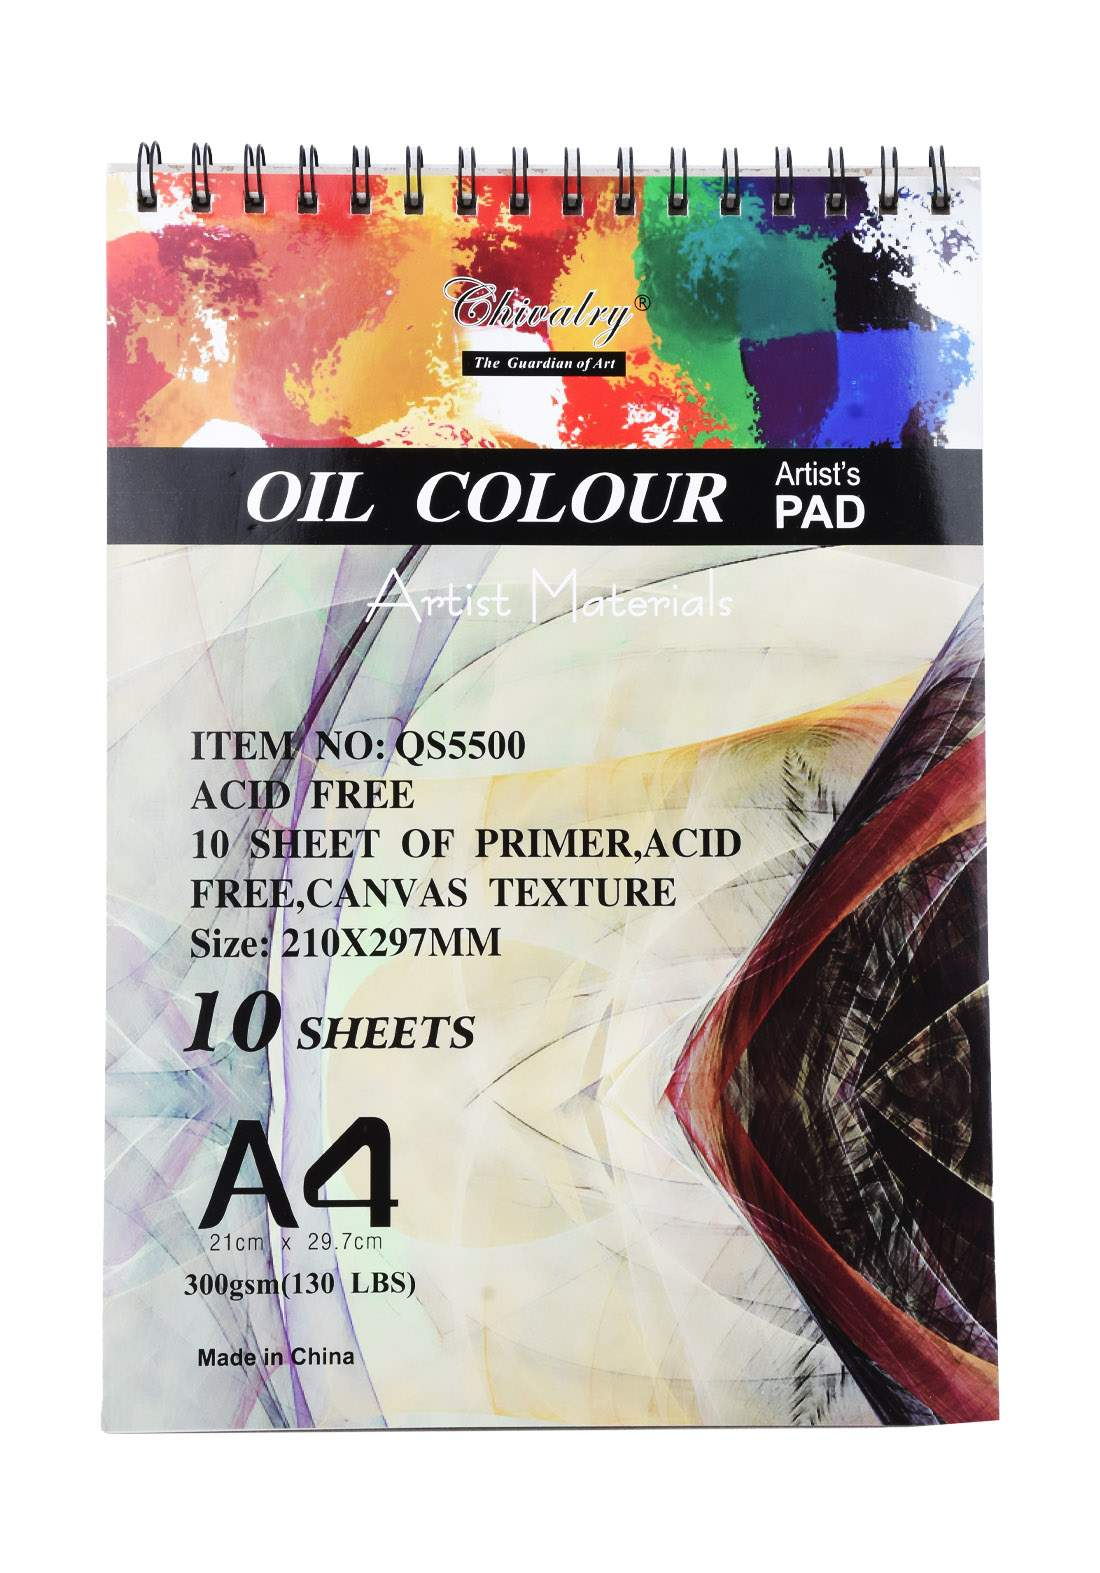 Oil Painting Notebook 10 Sheets A4 دفتر رسم زيتي 10 أوراق